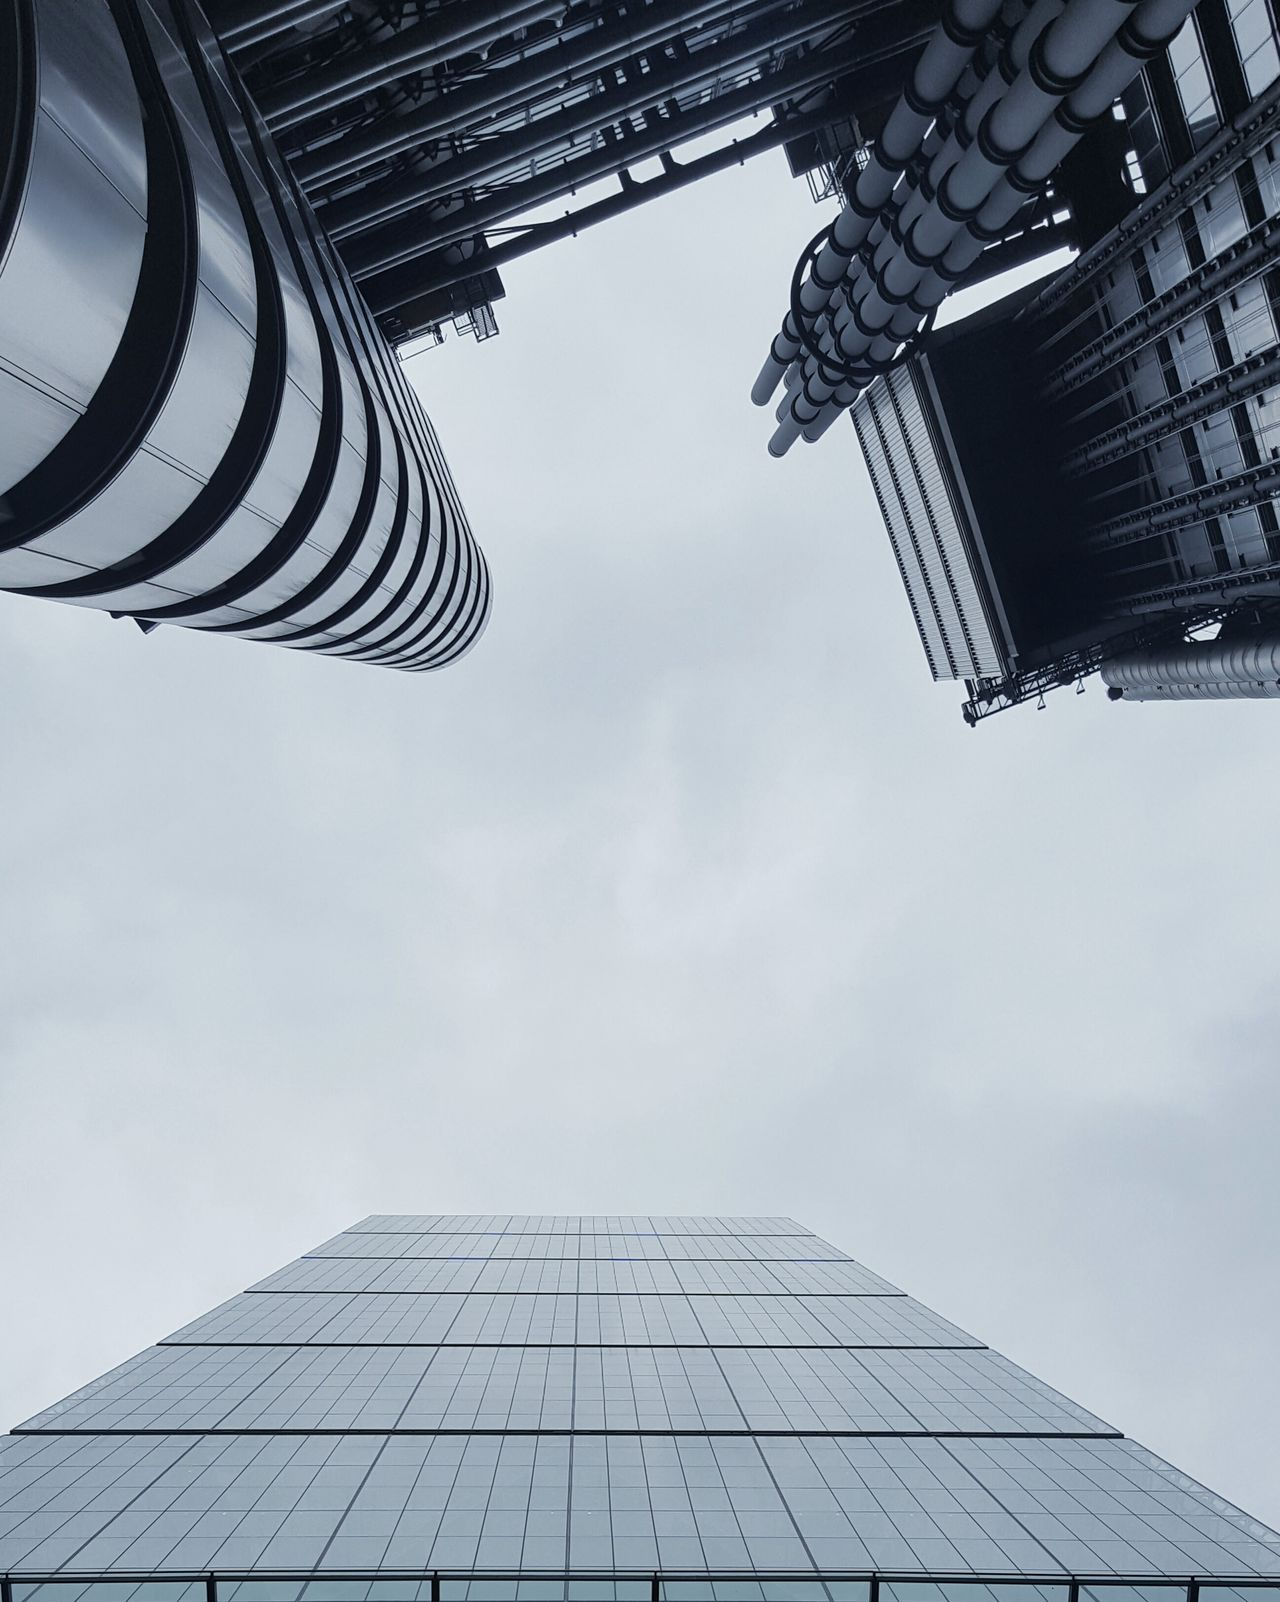 Business Finance And Industry Architecture No People Built Structure Cloud - Sky Outdoors Above Steel Sky Day Architecture London Cheesegrater Building Lloyds Building Lloyds Cheesegrater Leadenhall Building City From Below Looking Up The Architect - 2017 EyeEm Awards EyeEm LOST IN London